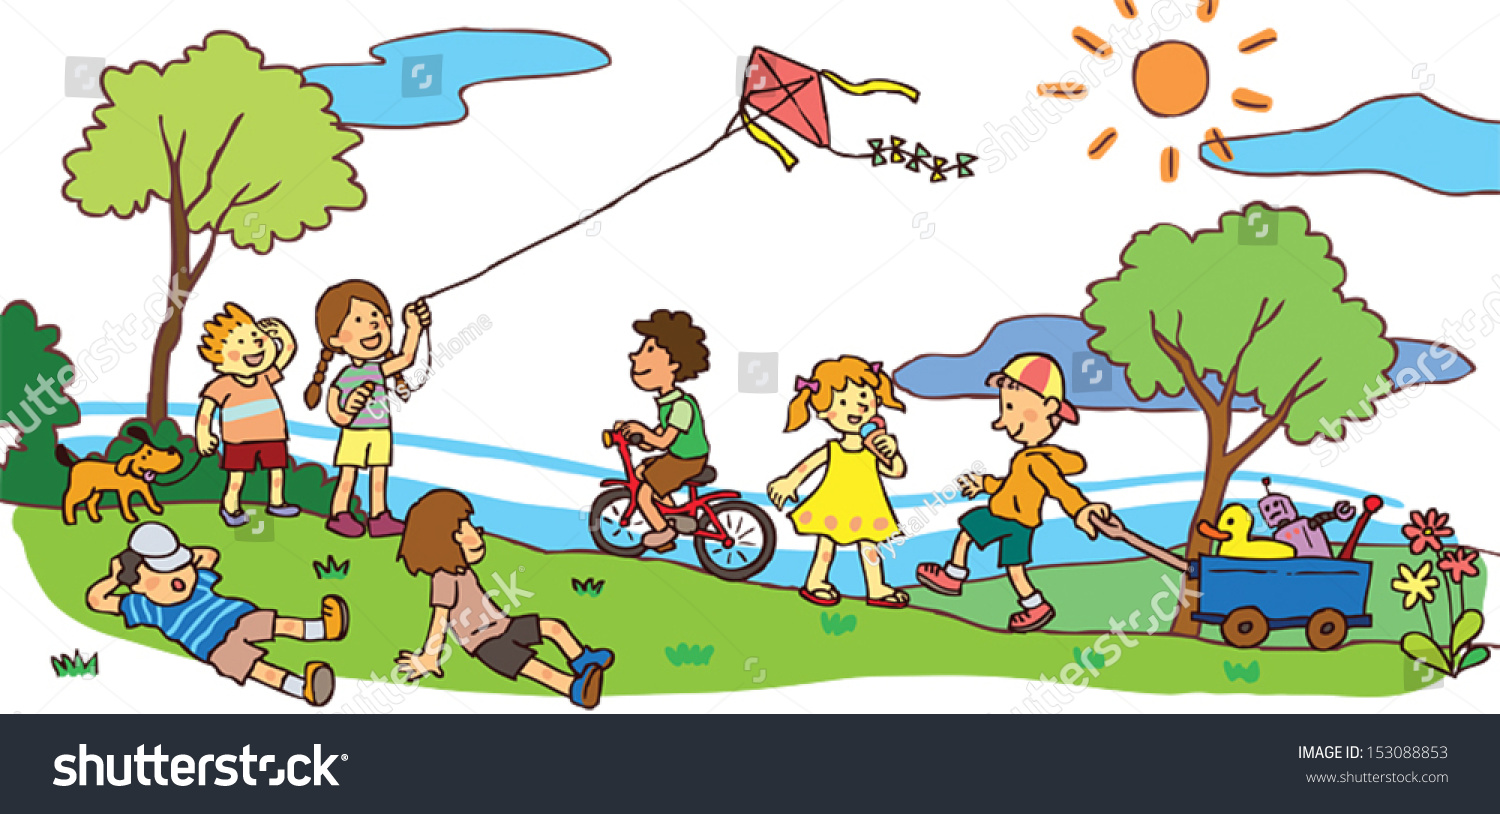 Cartoon Images Of Children Playing